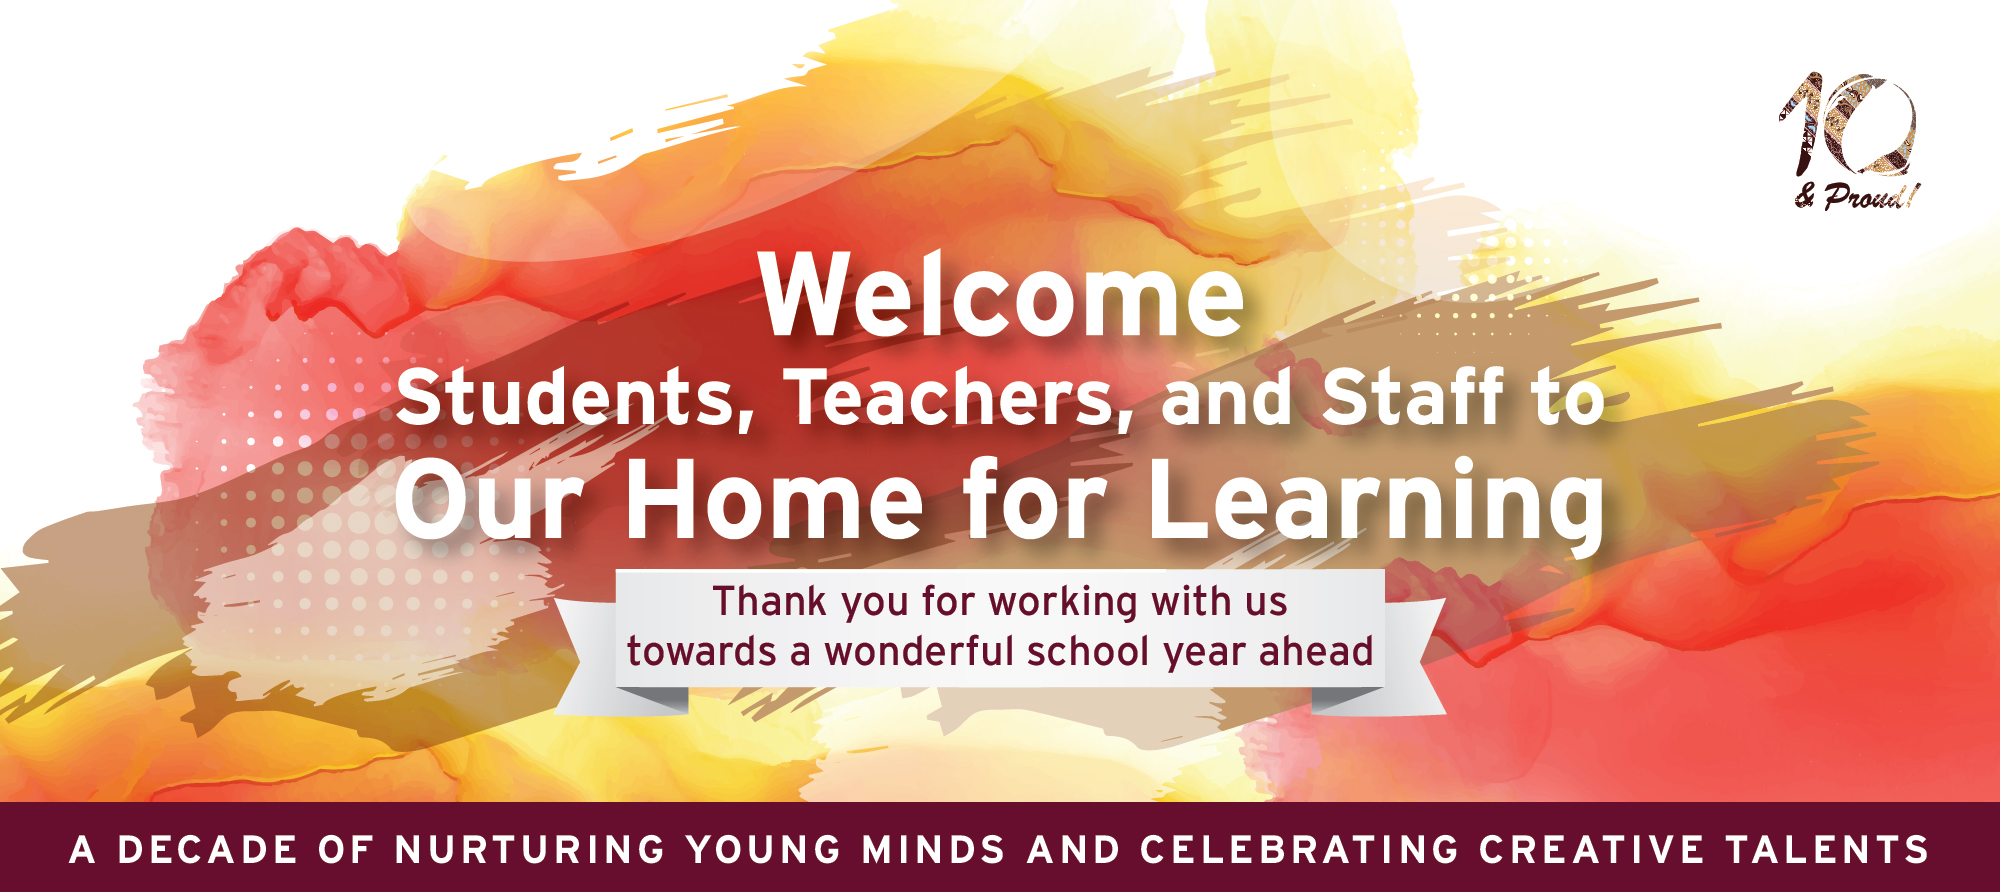 WELCOME STUDENTS, TEACHERS, AND STAFF